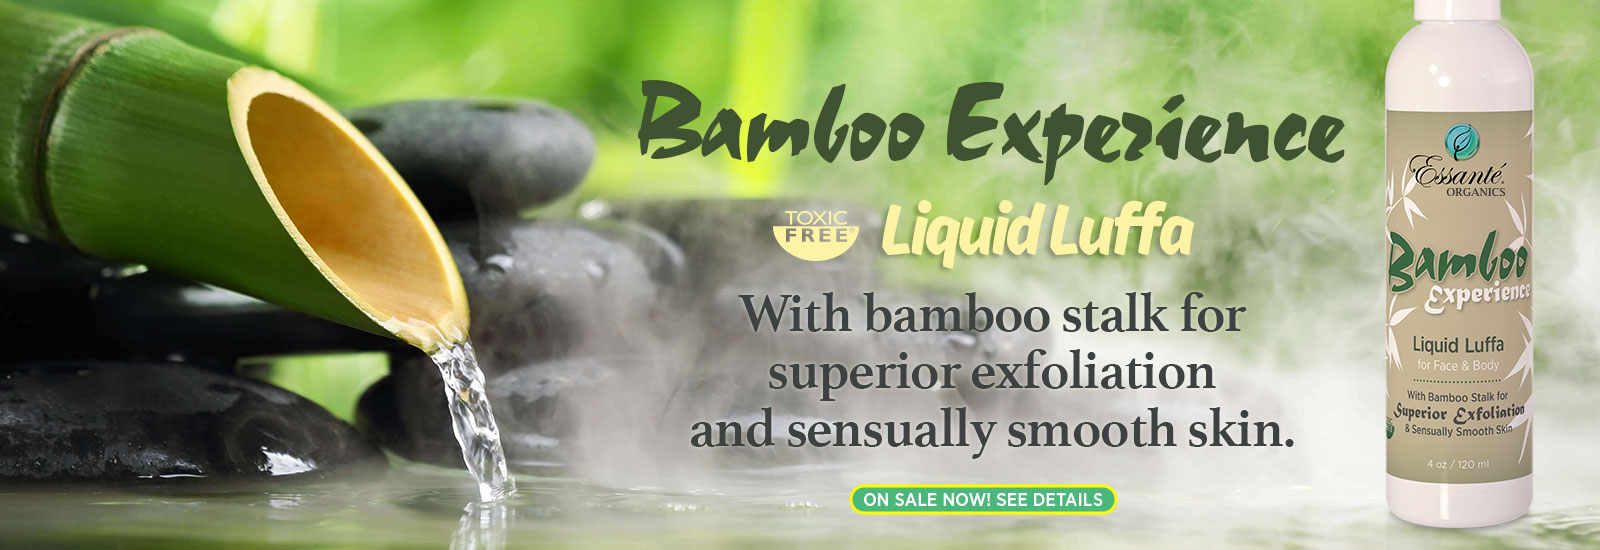 Bamboo Experience Sale